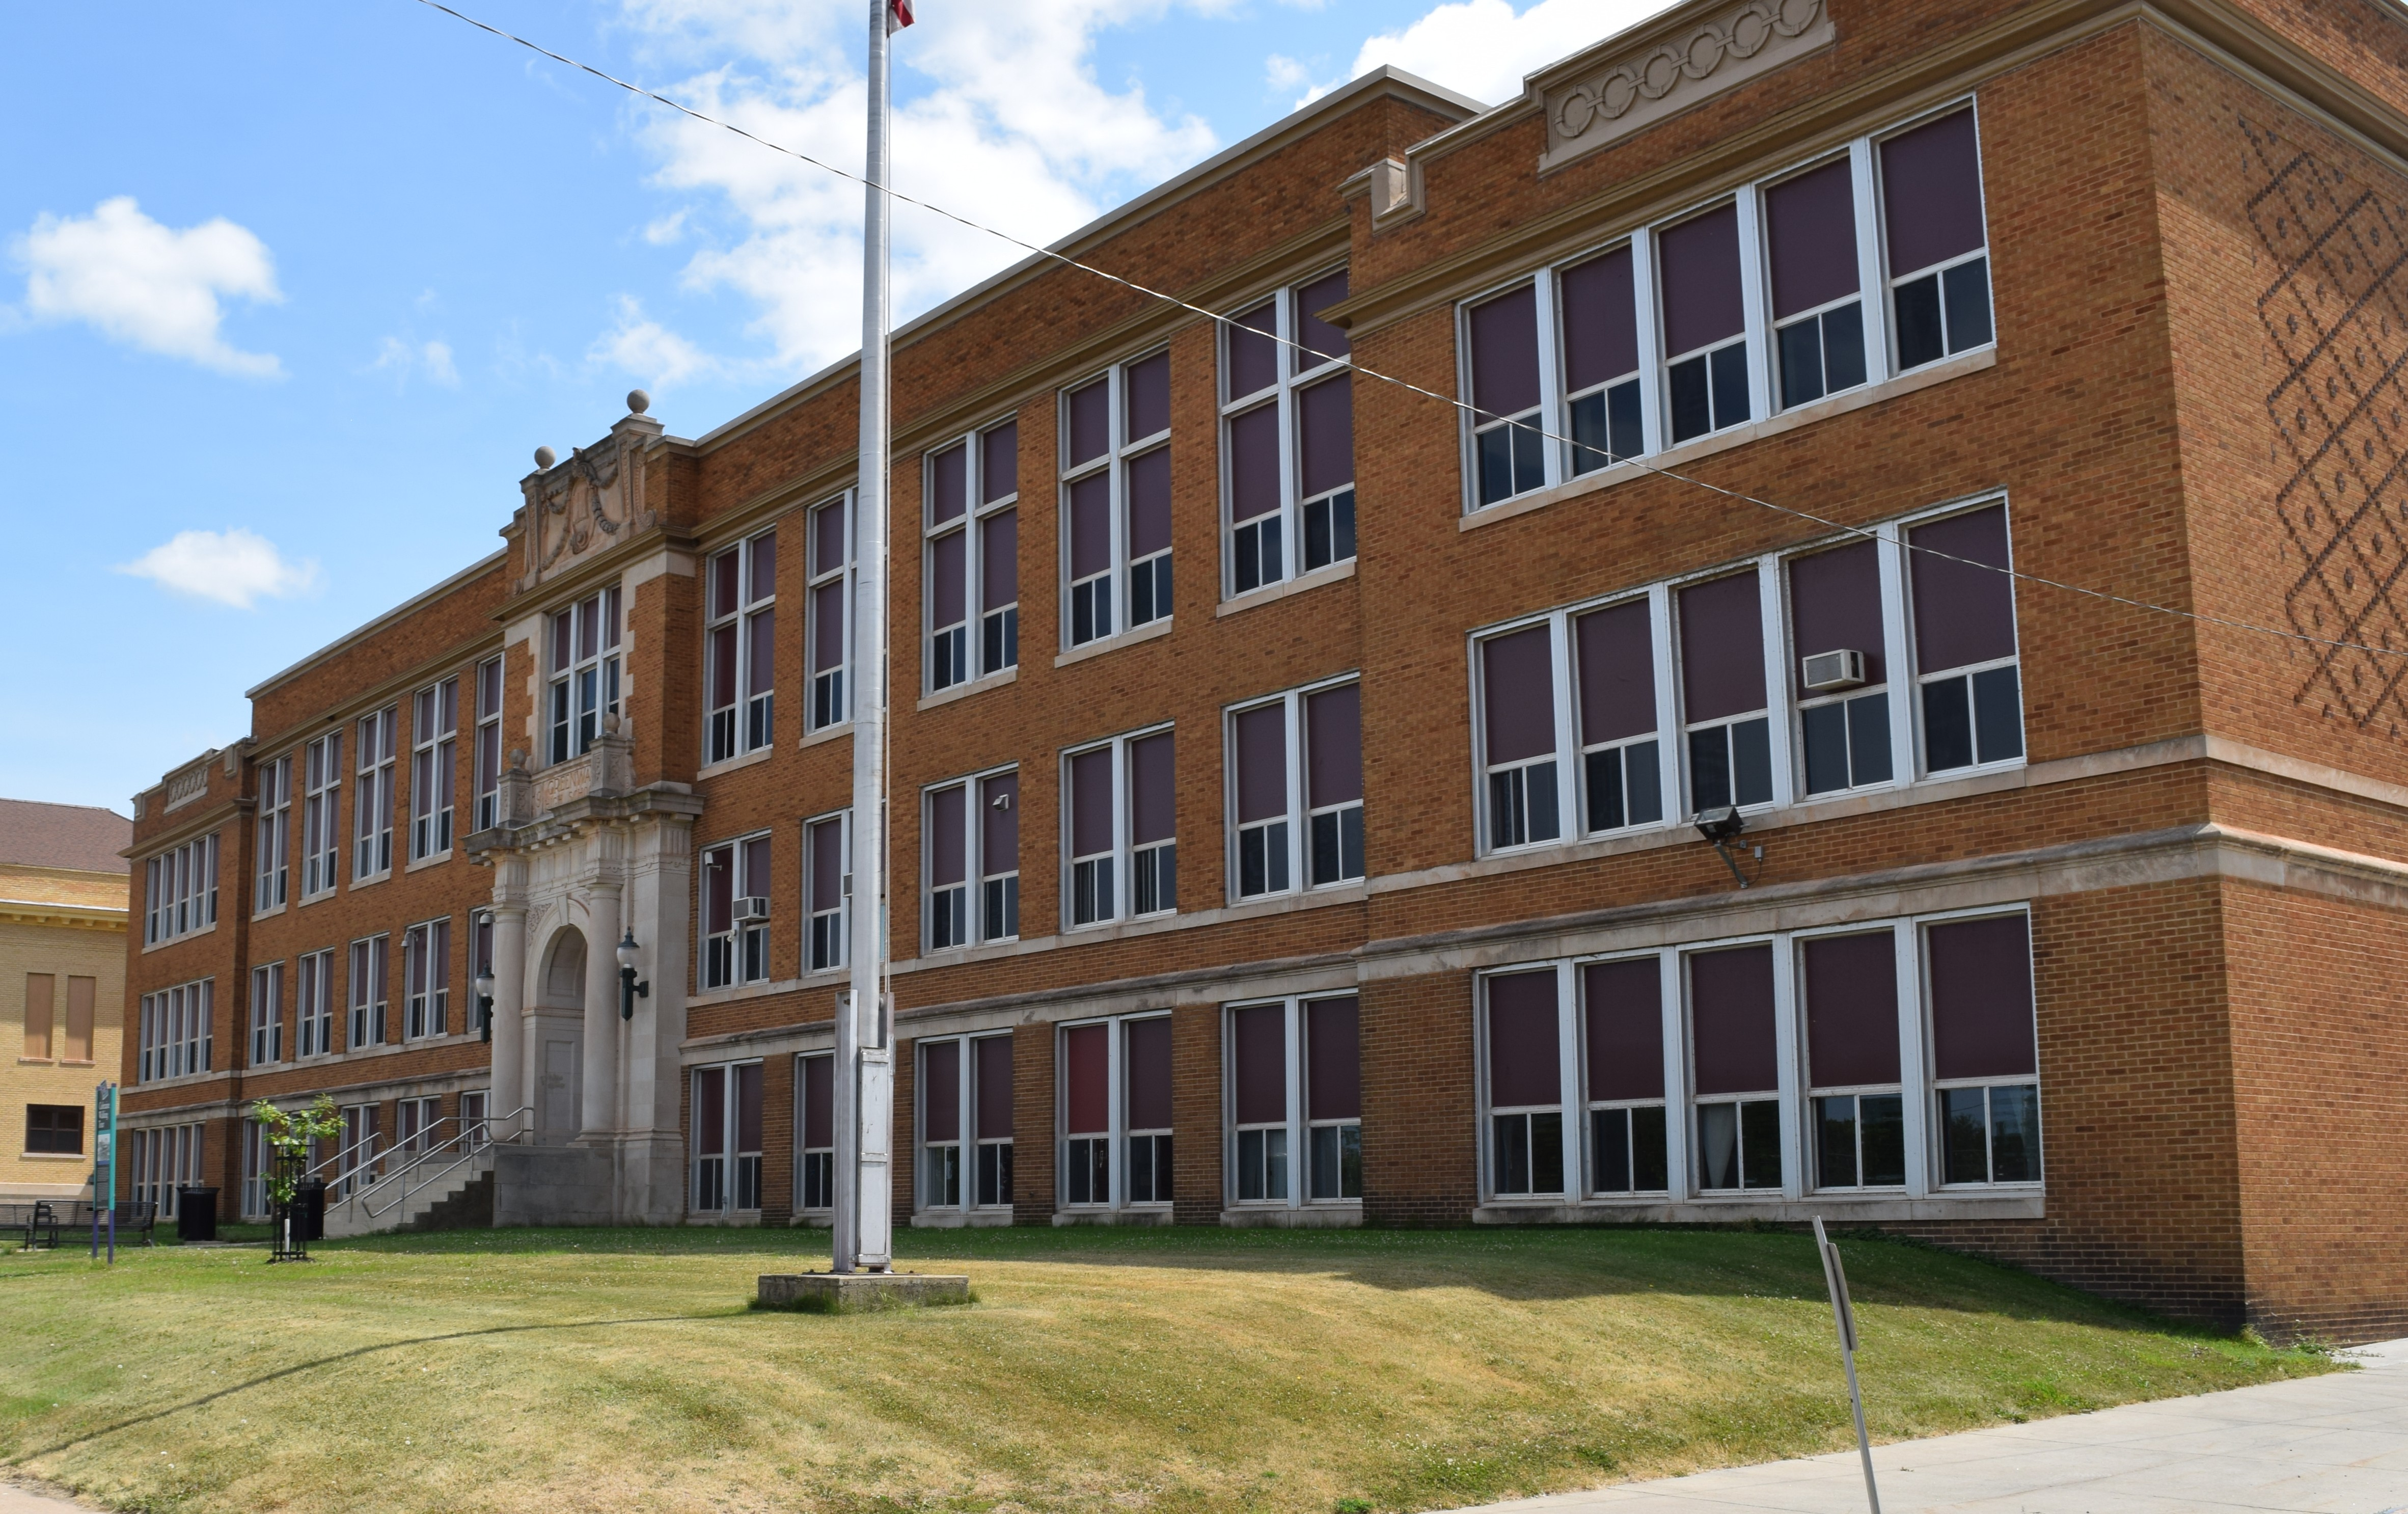 Greenway HS4